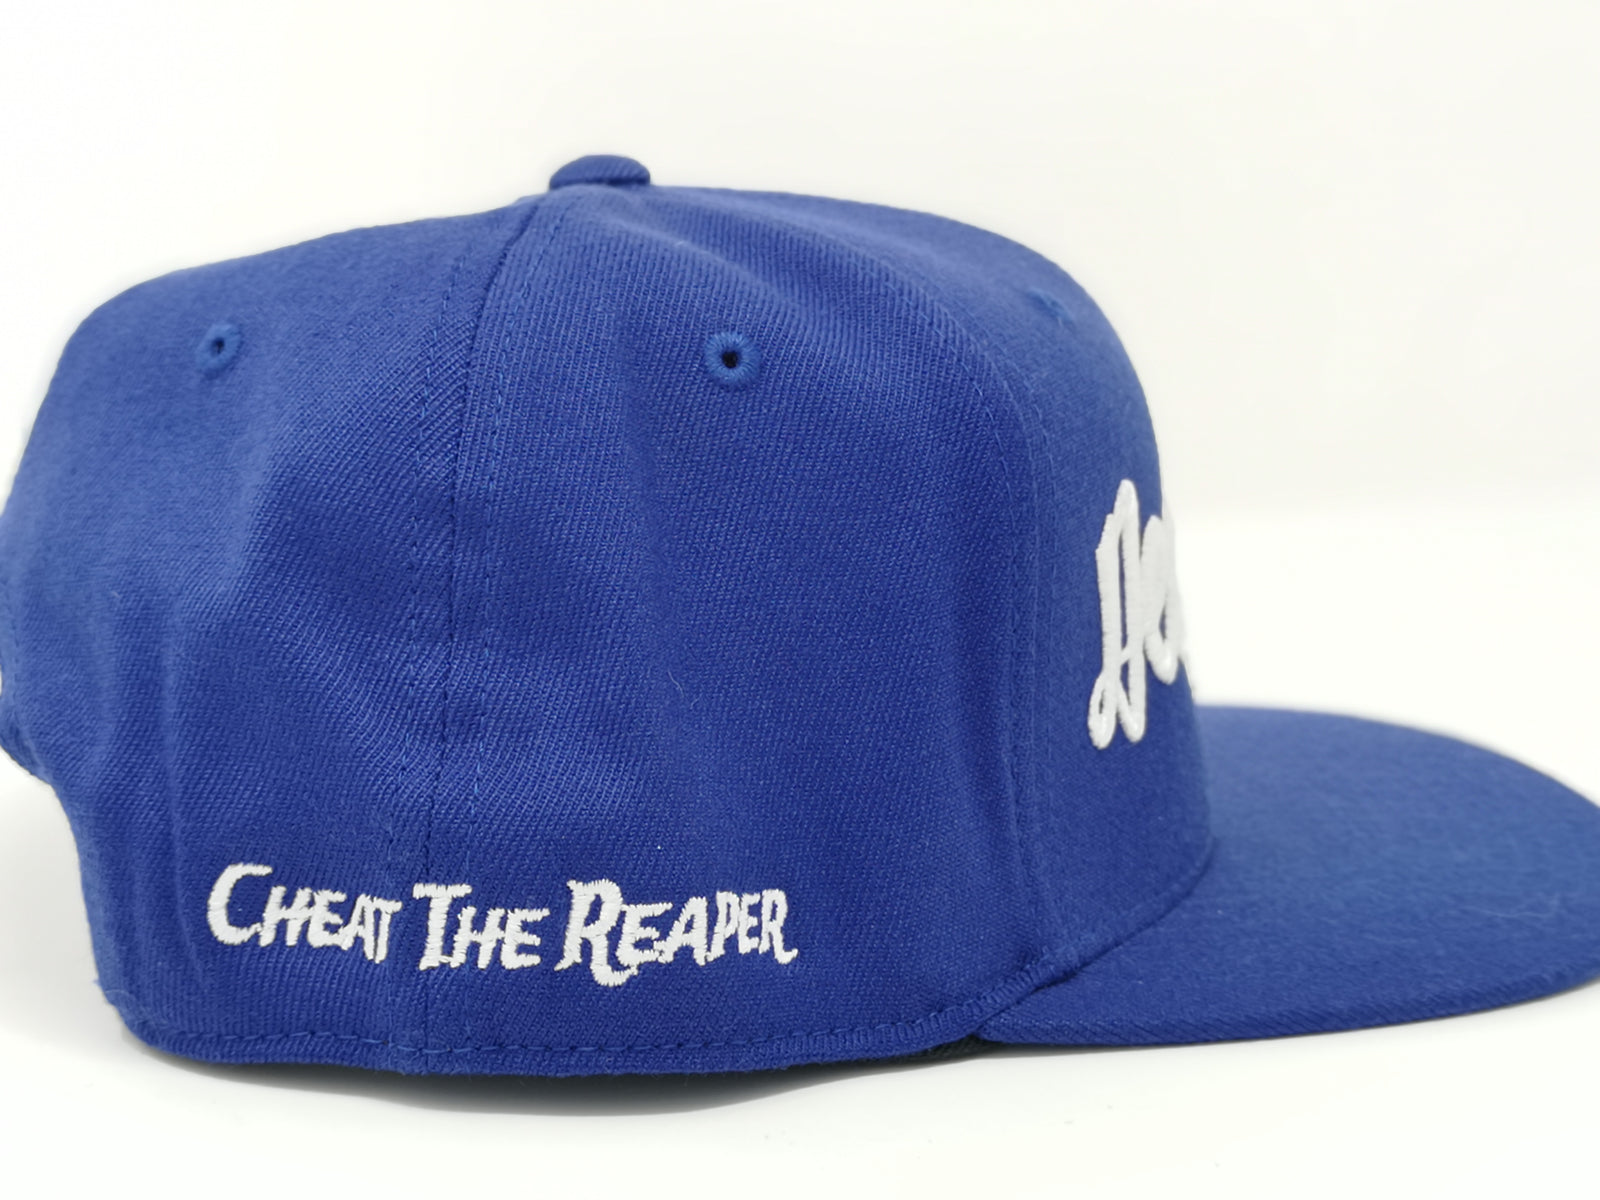 White on Blue Snapback